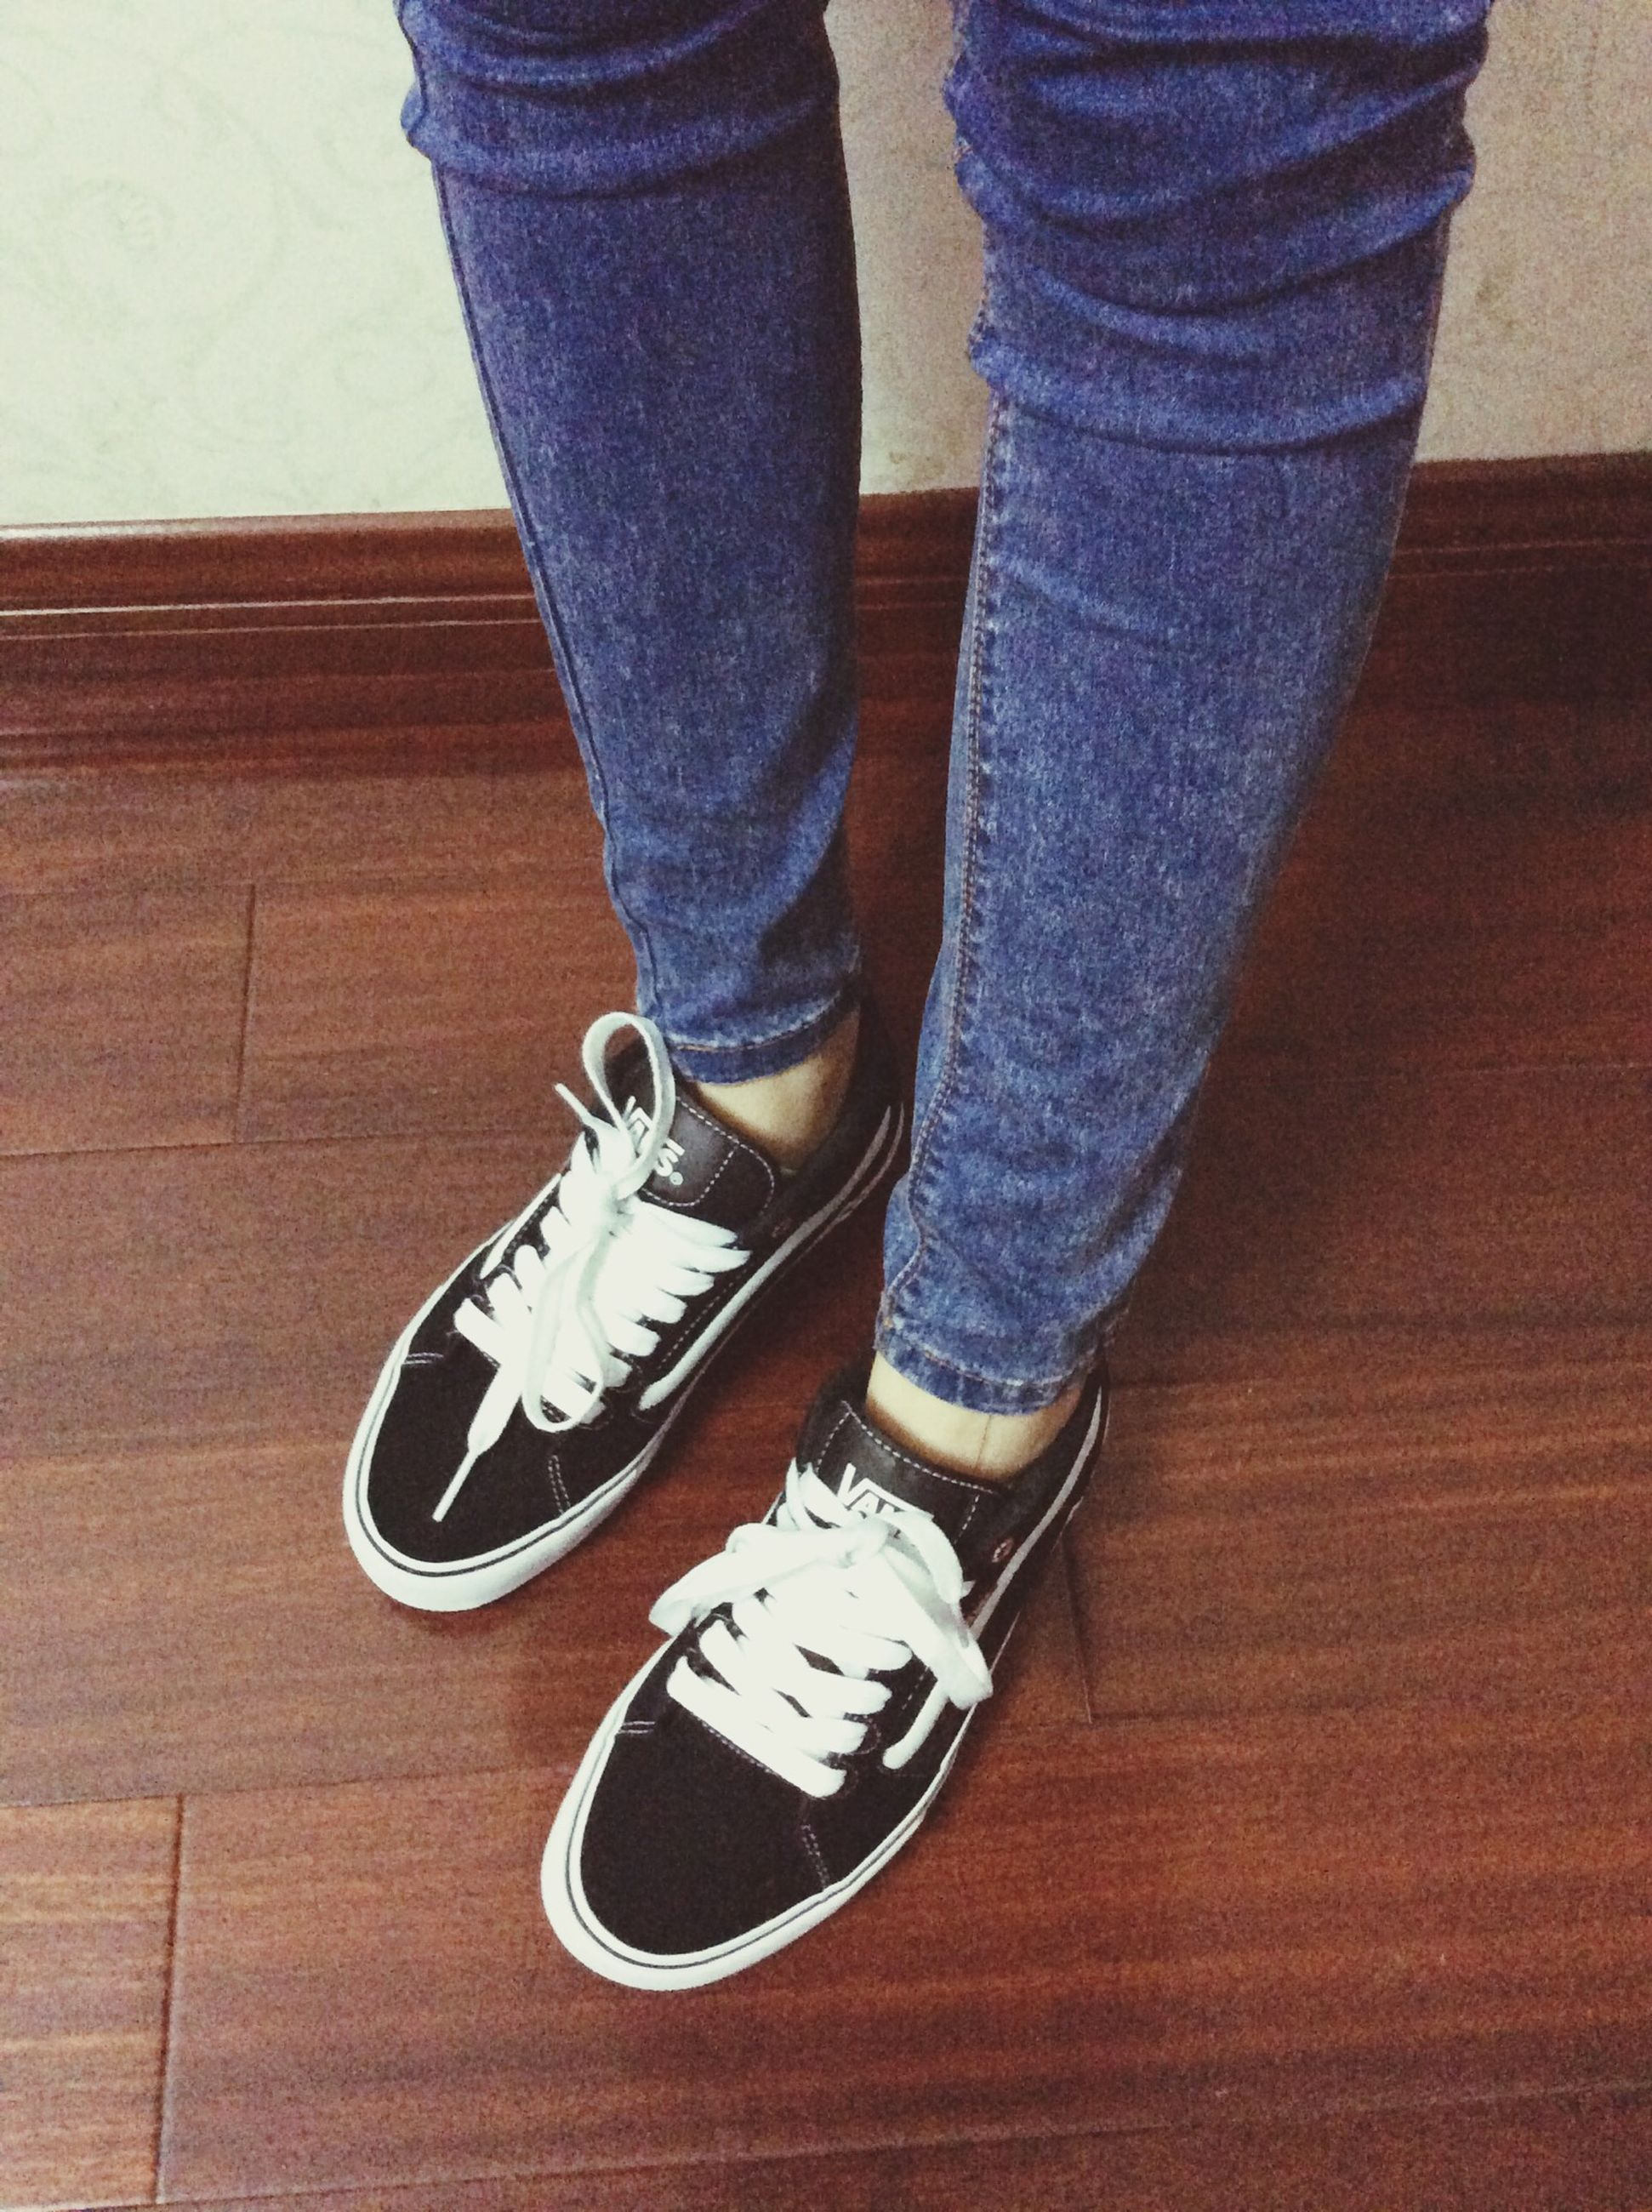 shoe, low section, indoors, person, high angle view, jeans, footwear, casual clothing, lifestyles, standing, wood - material, leisure activity, men, flooring, communication, hardwood floor, sitting